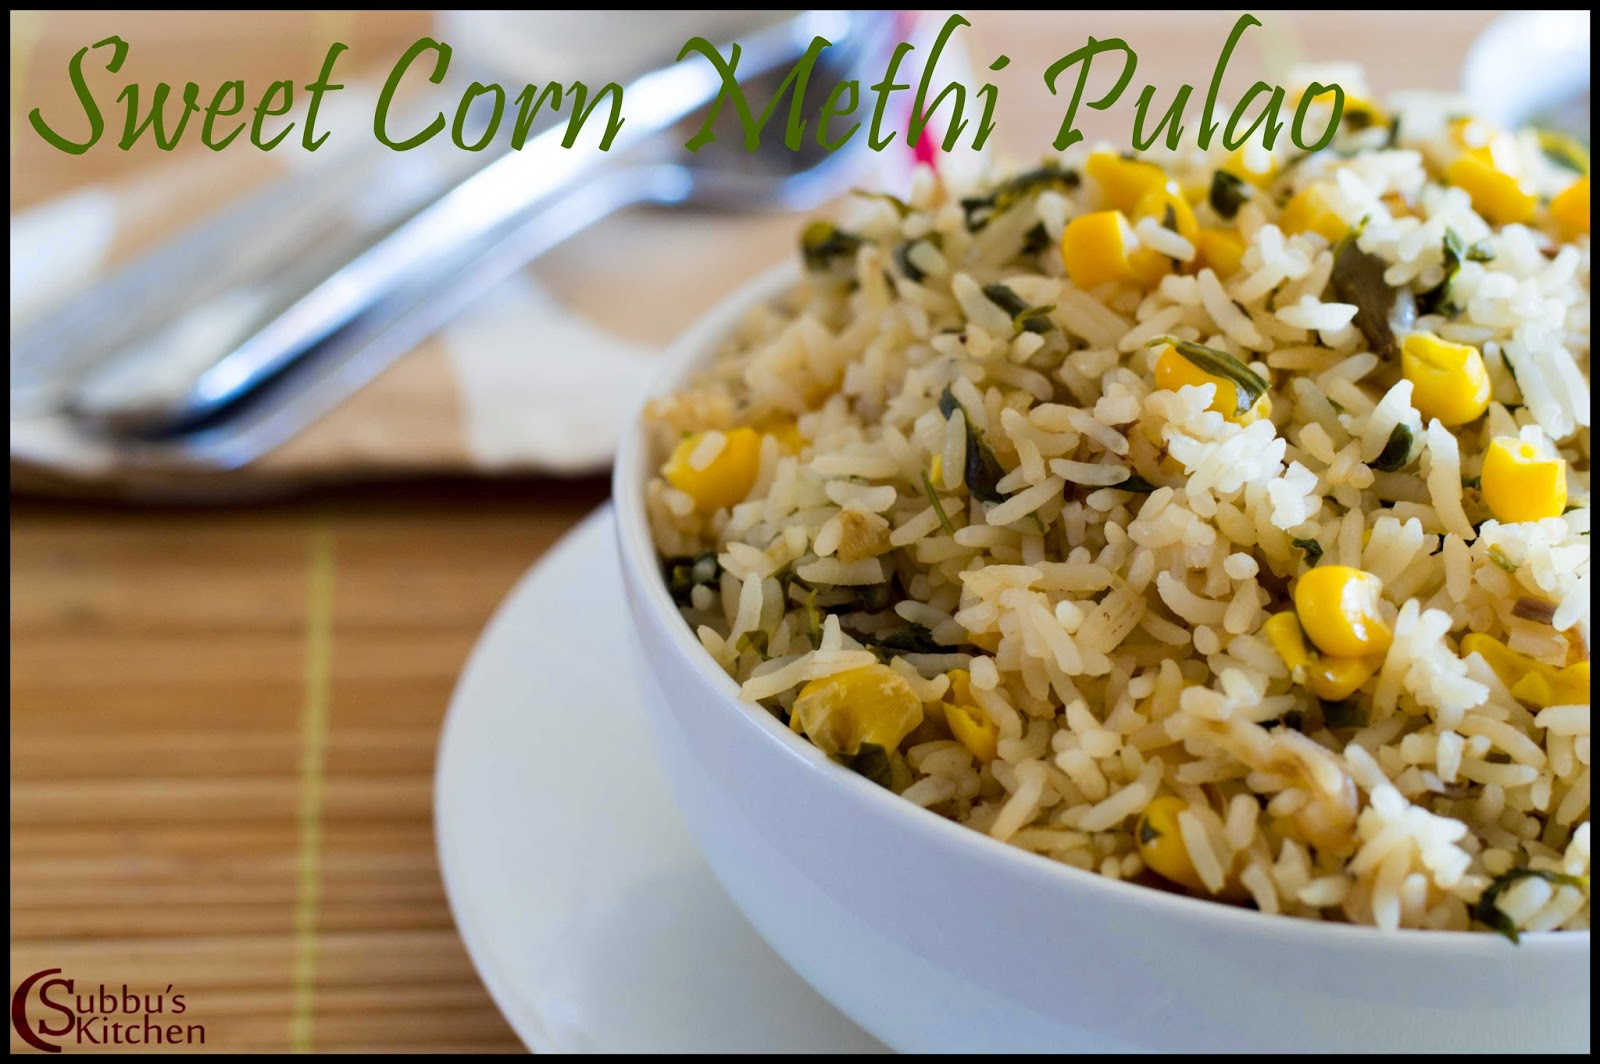 SweetCorn Methi Pulao Recipe